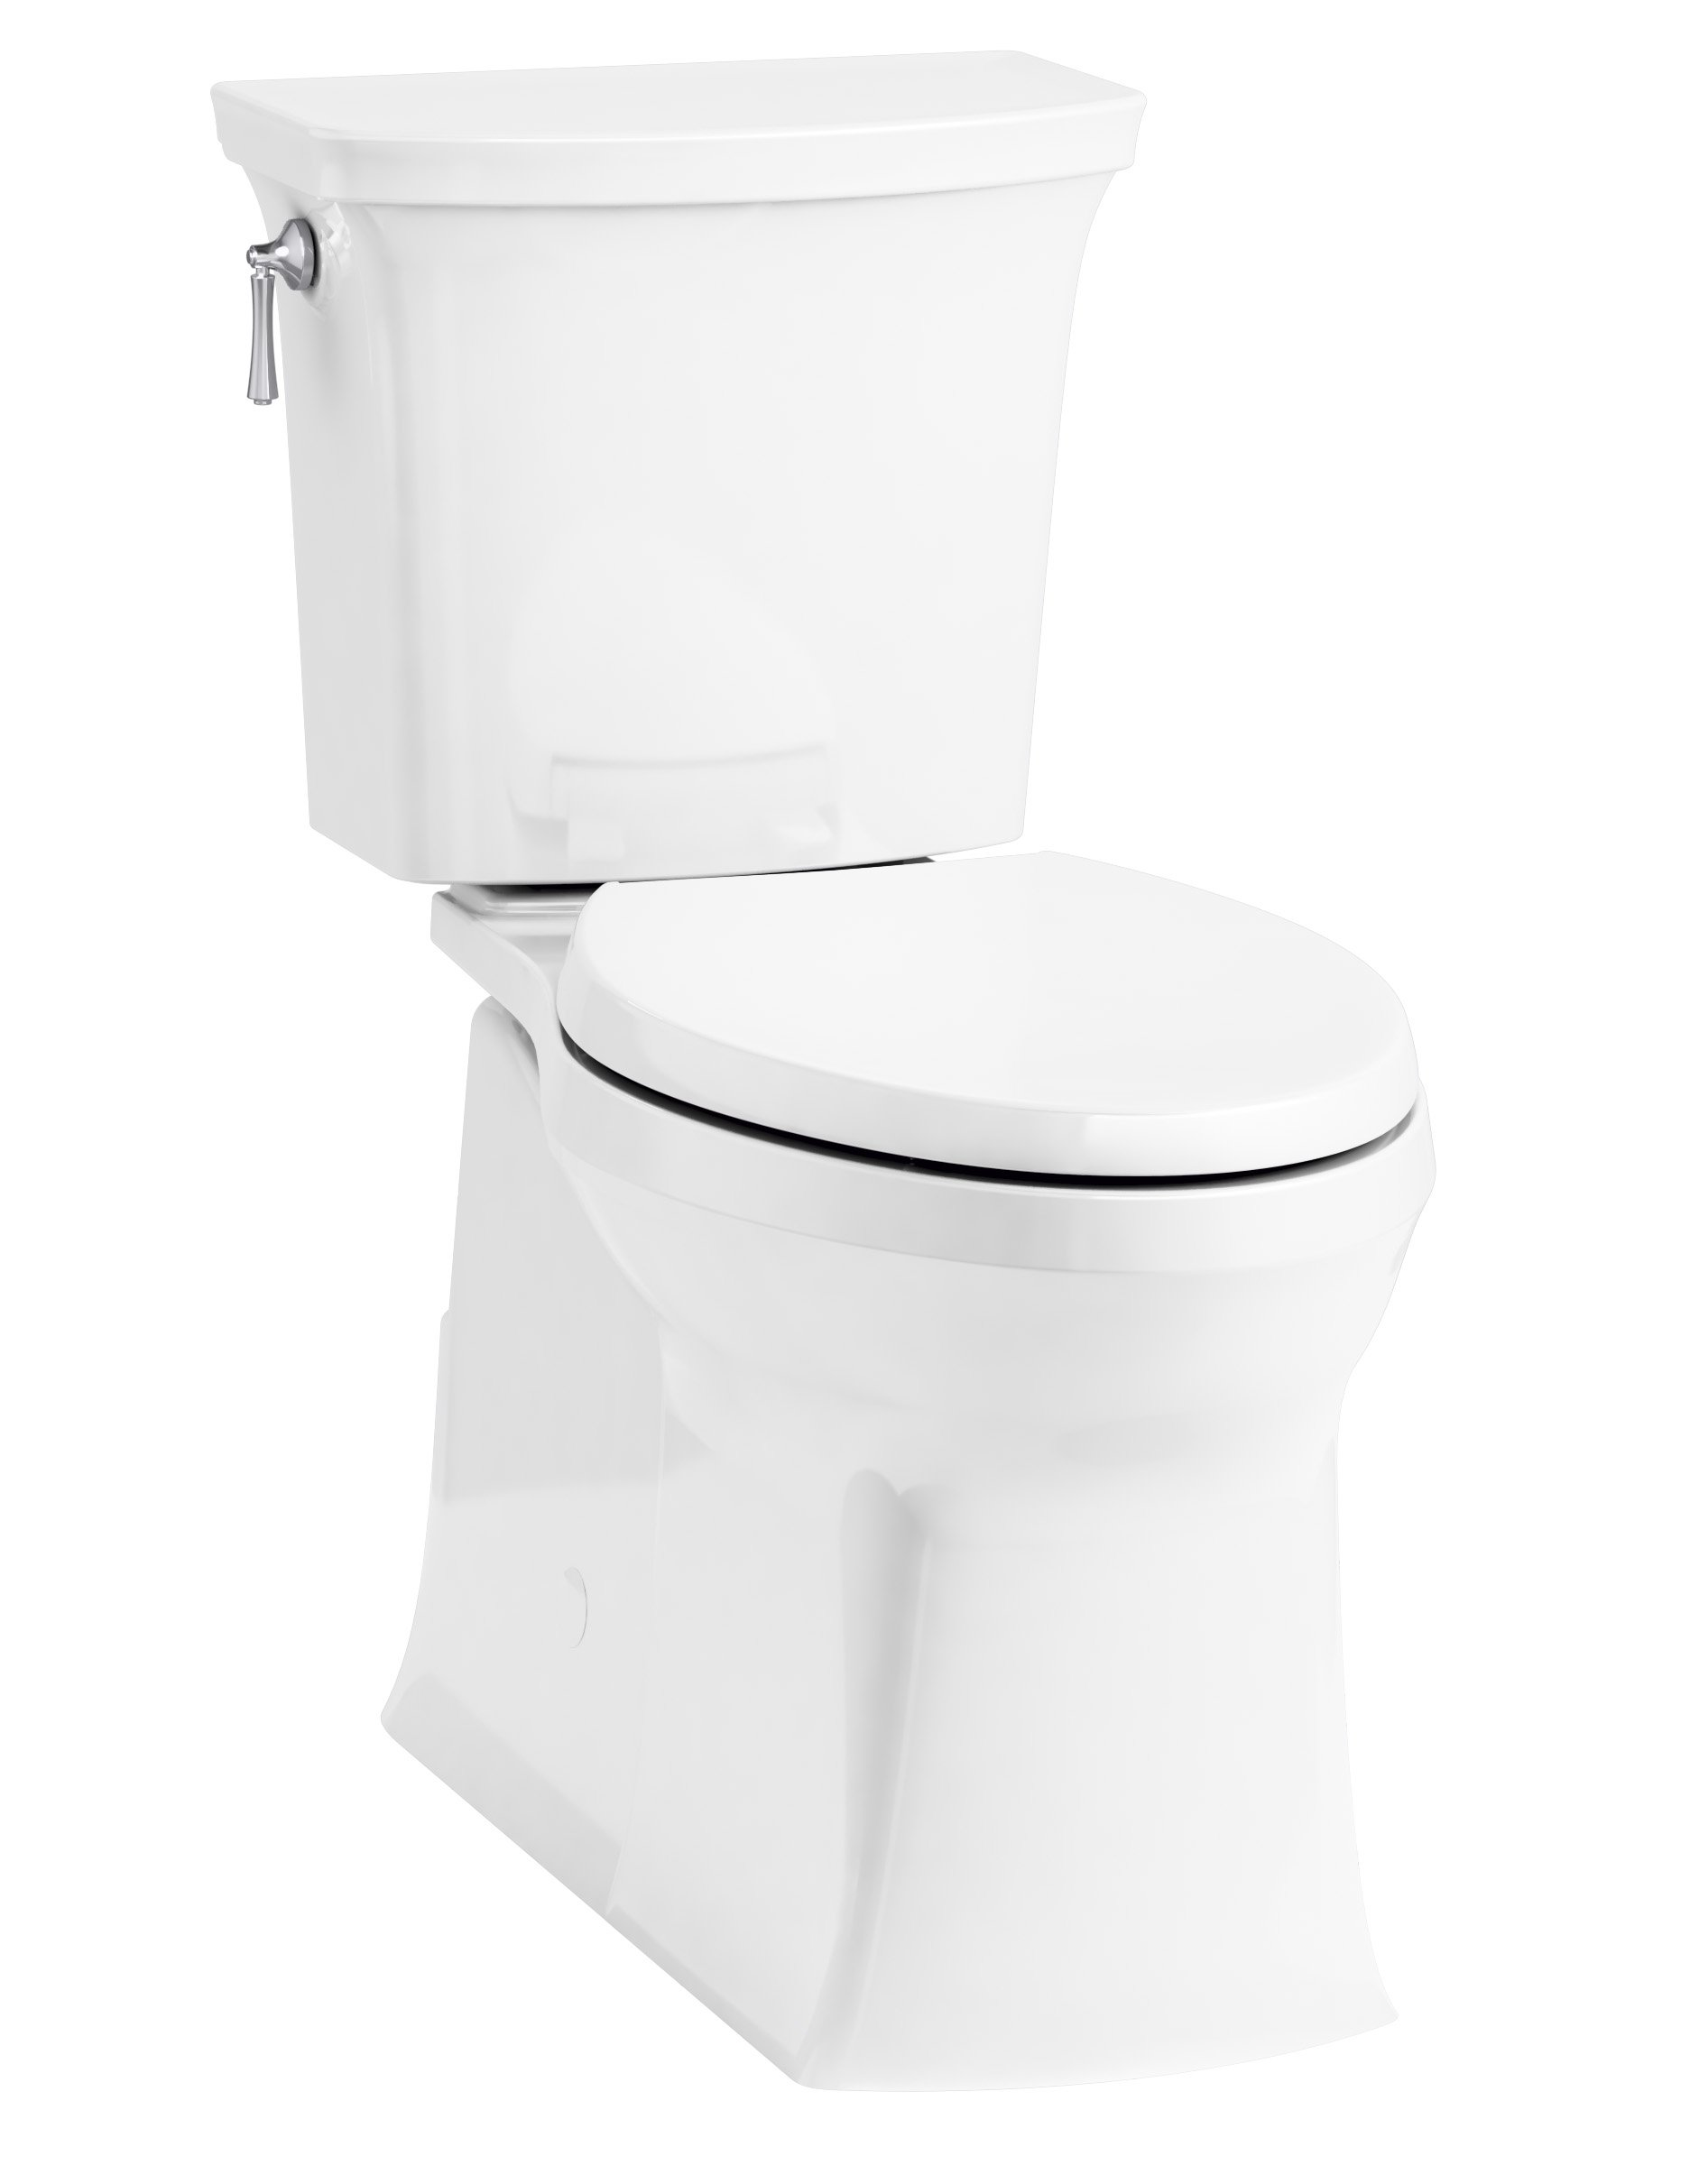 KOHLER 3814-0 Two (TM) Corbelle Comfort Height(R) elongated 1.28 gpf toilet with skirted trapway and Revolution 360 swirl flushing technology and left-hand trip lever (2 Piece), White by Kohler